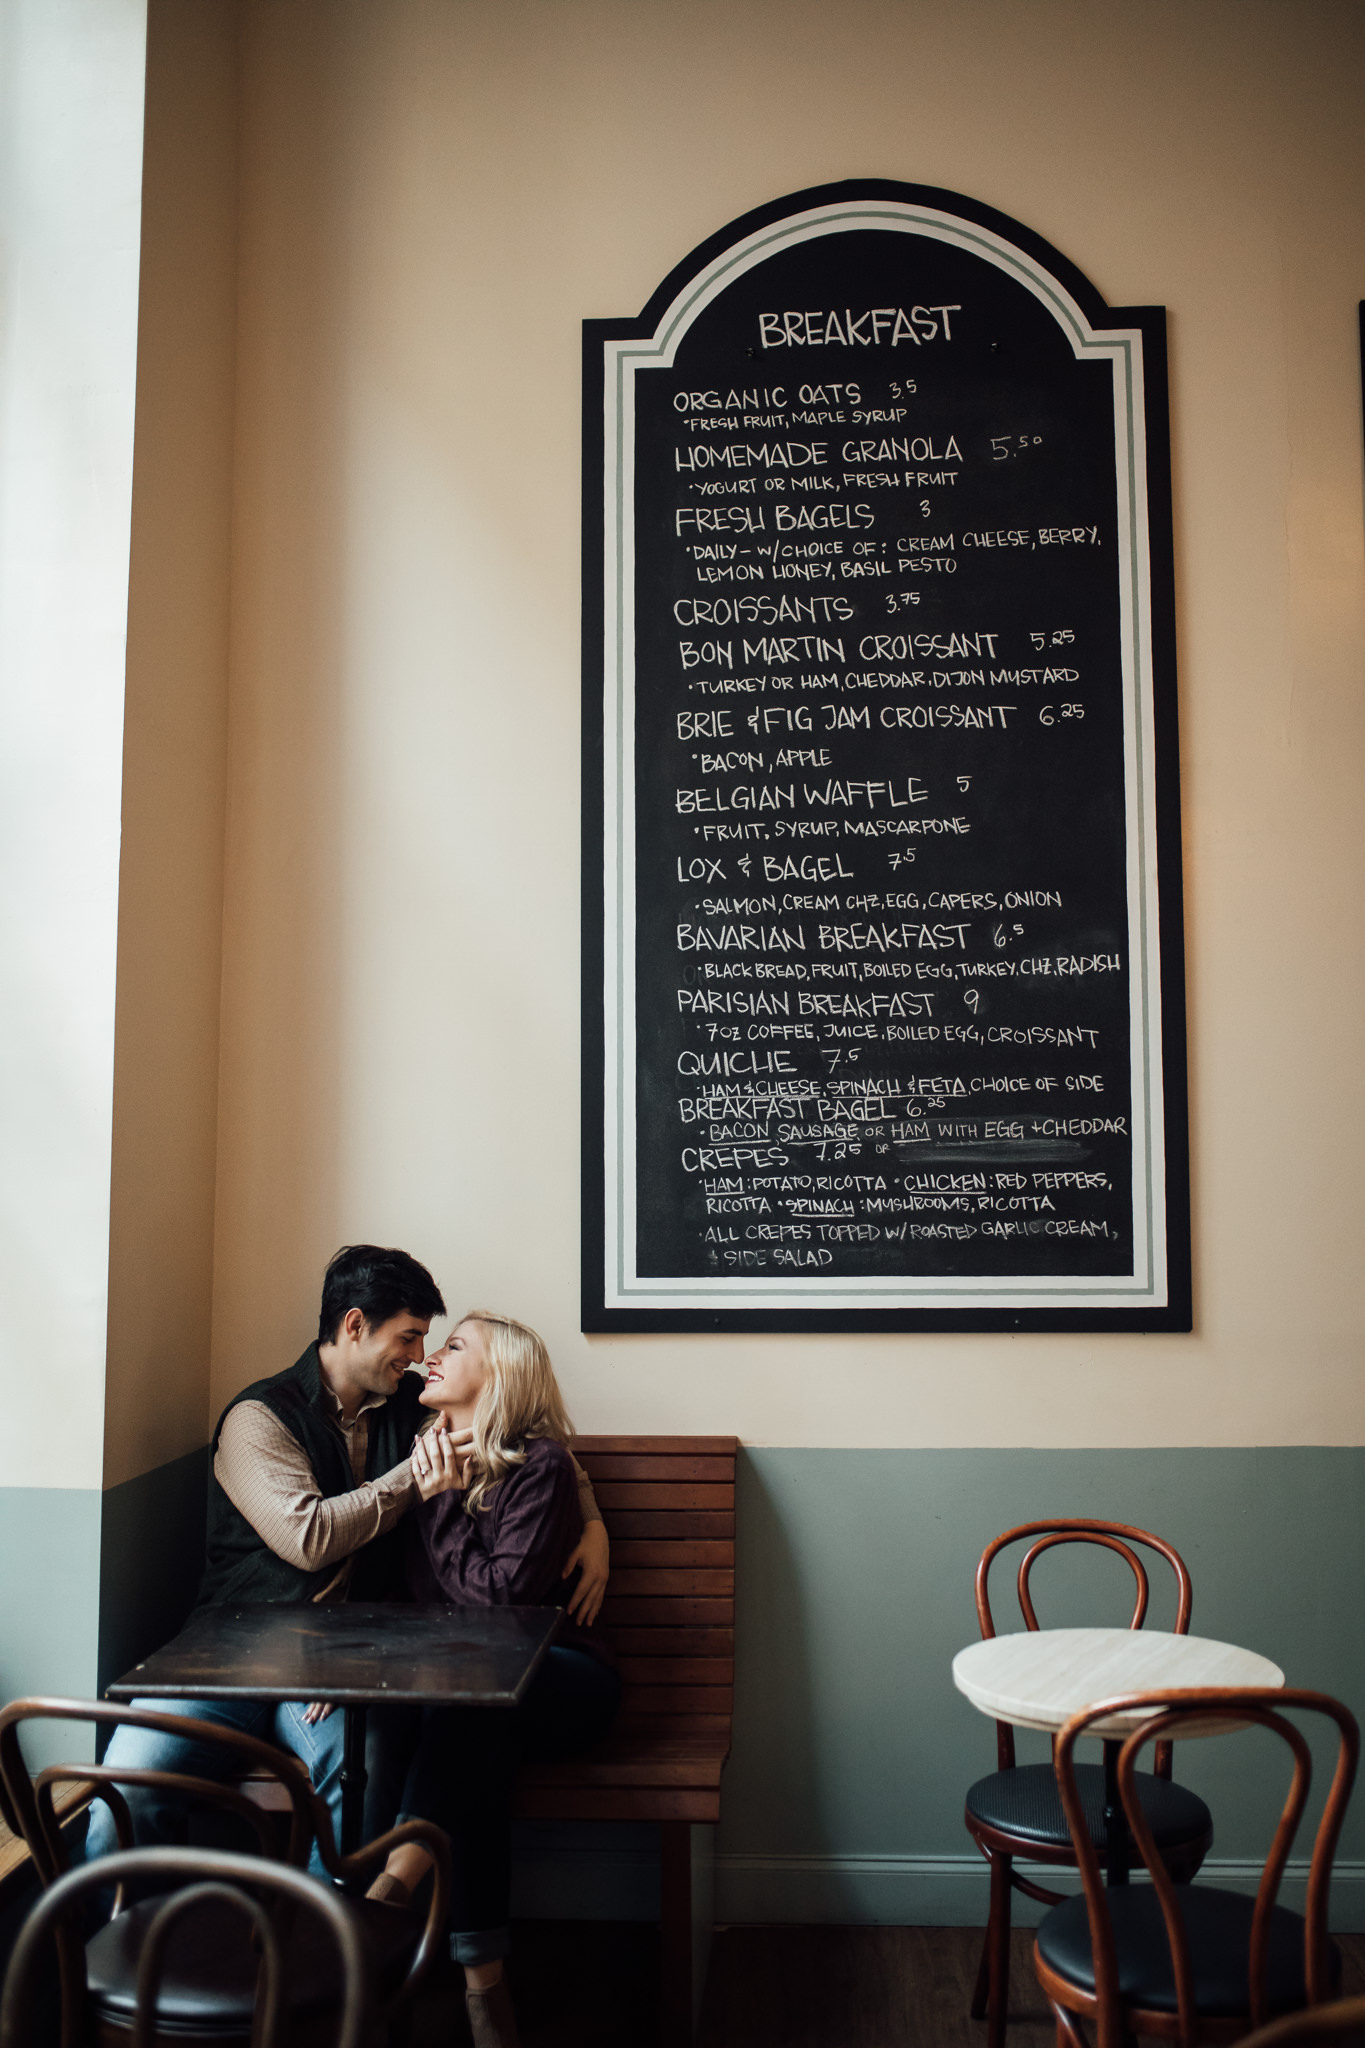 memphis-wedding-photographer-cassie-cook-photography-cafe-keough-engagement-photoshoot-coffee-engagement-23.jpg